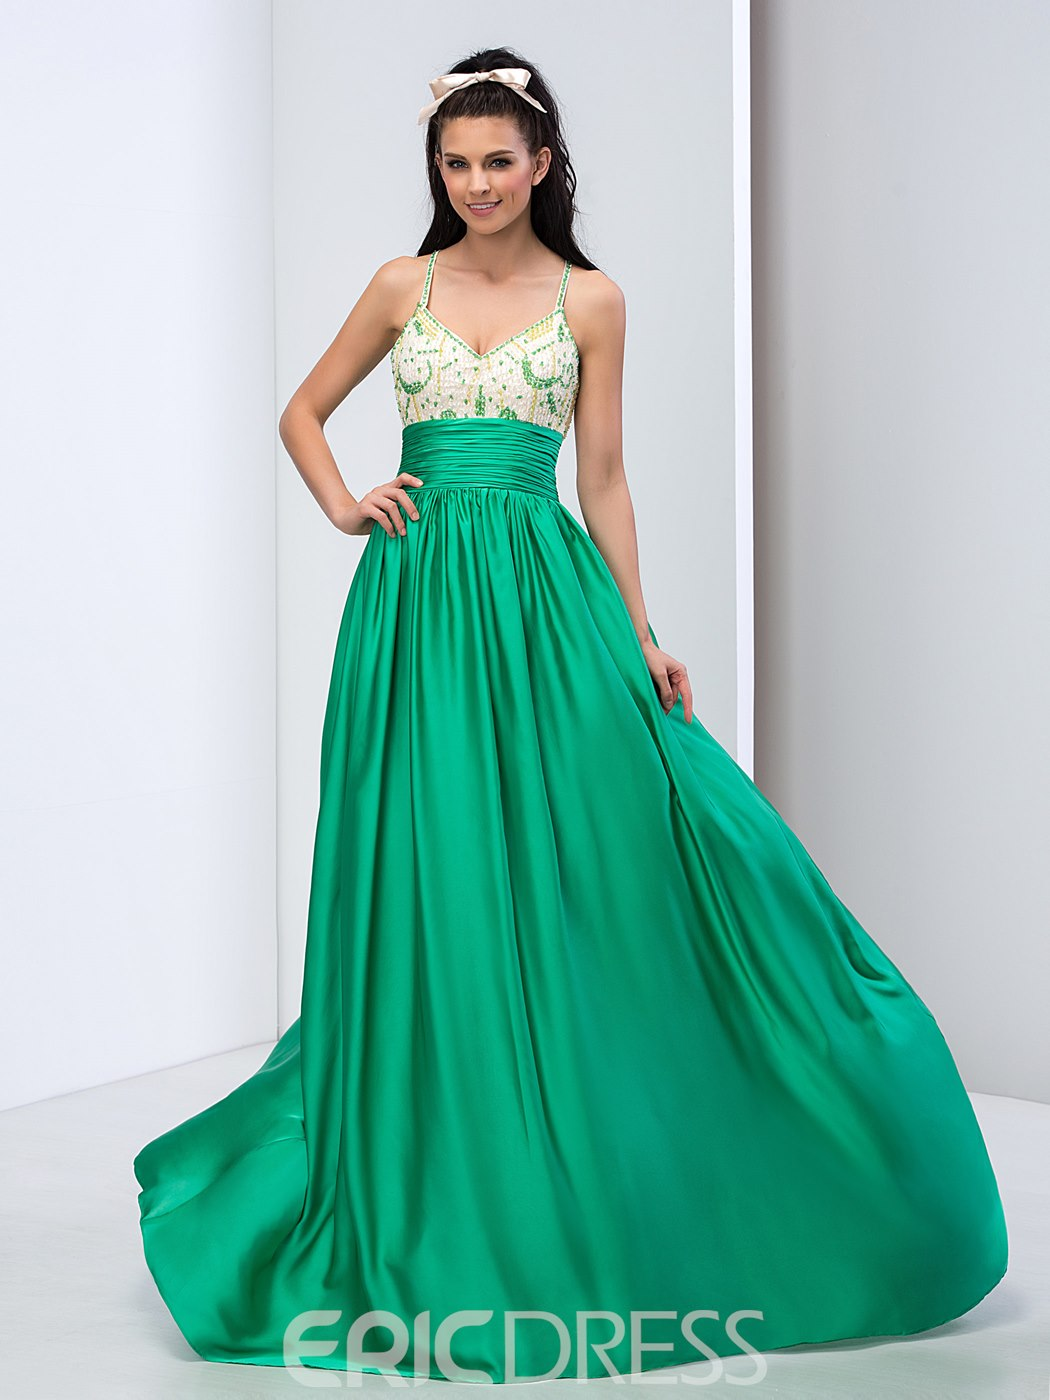 Ericdress Spaghetti Straps Criss-cross Beading Long Prom Dress ...